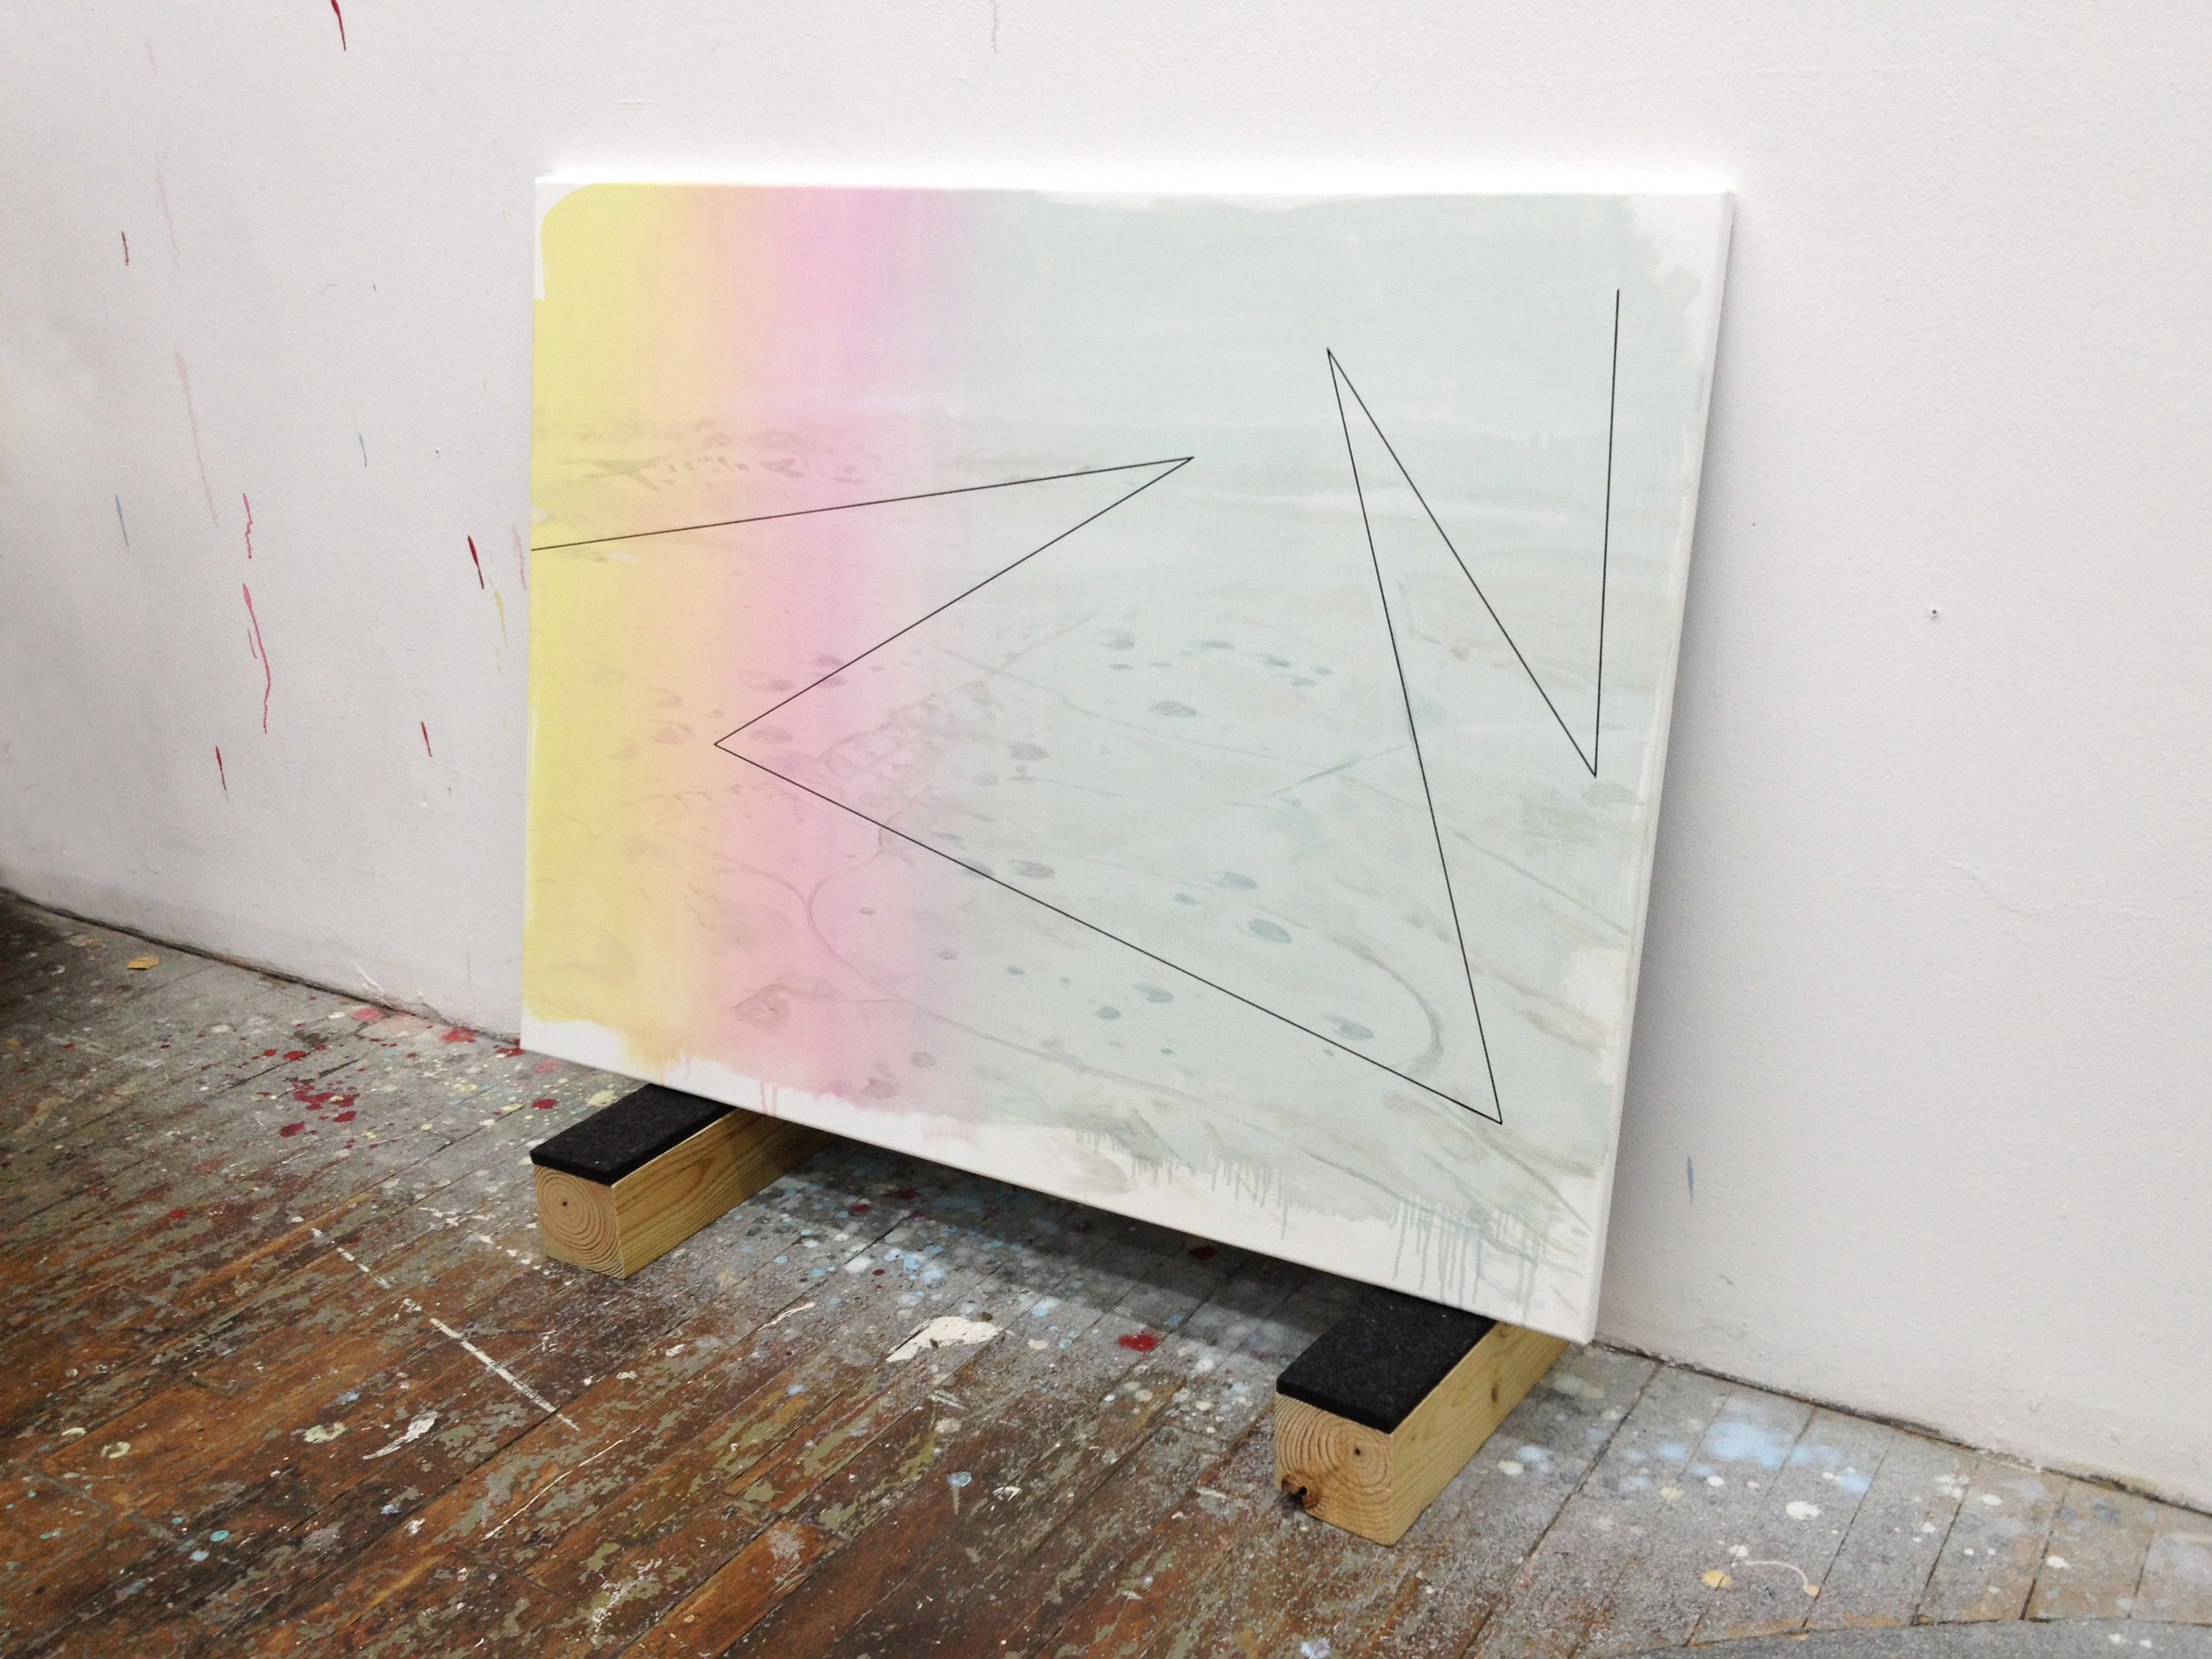 Painting for Forced Collaboration